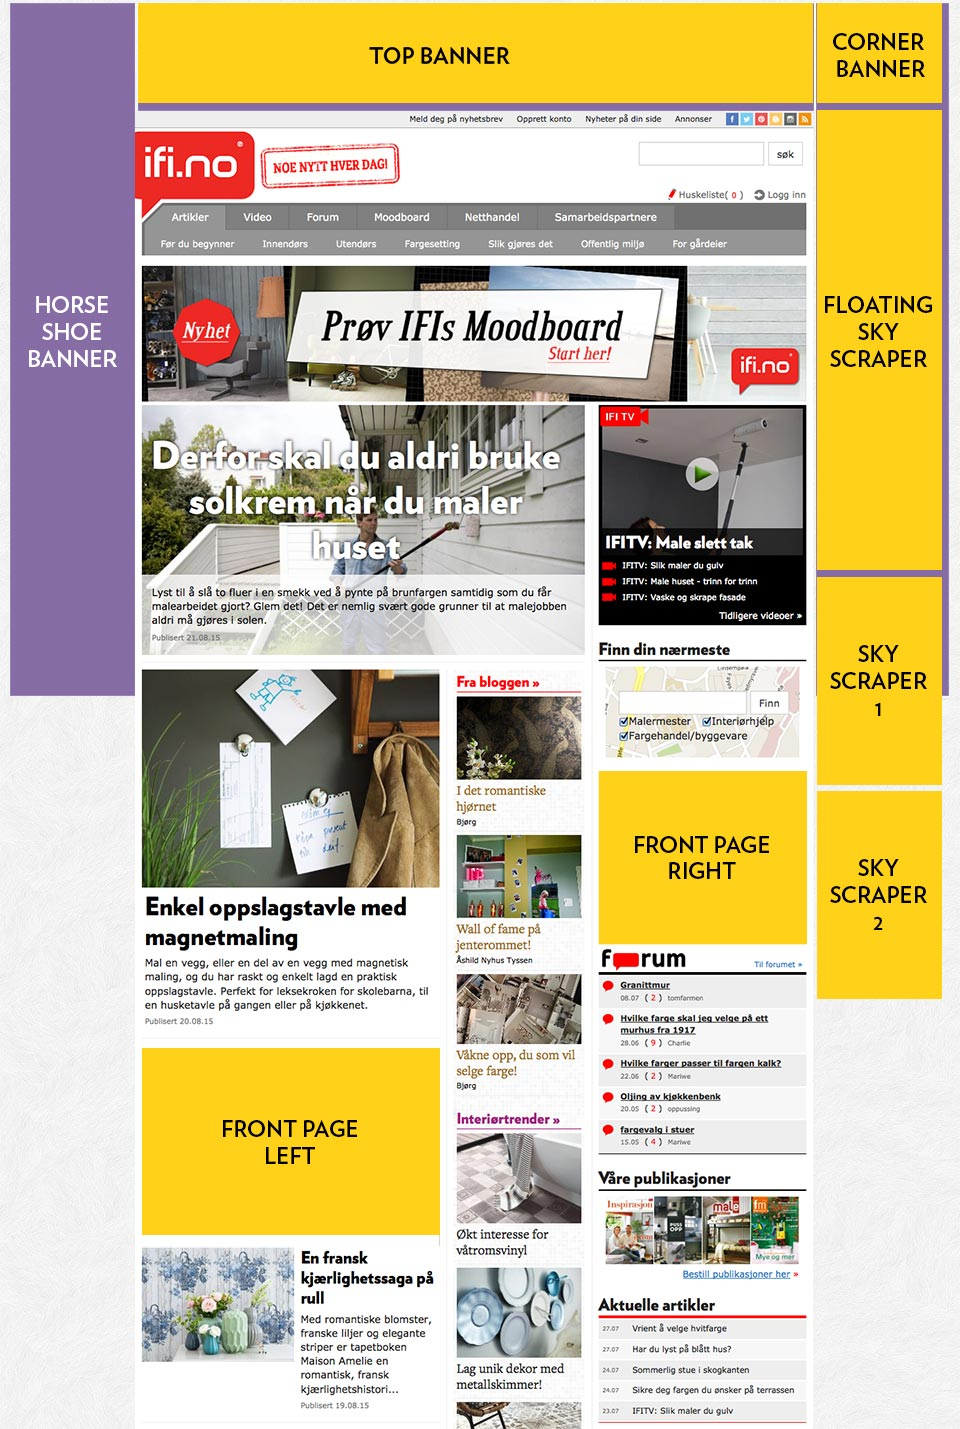 Desktop site placements